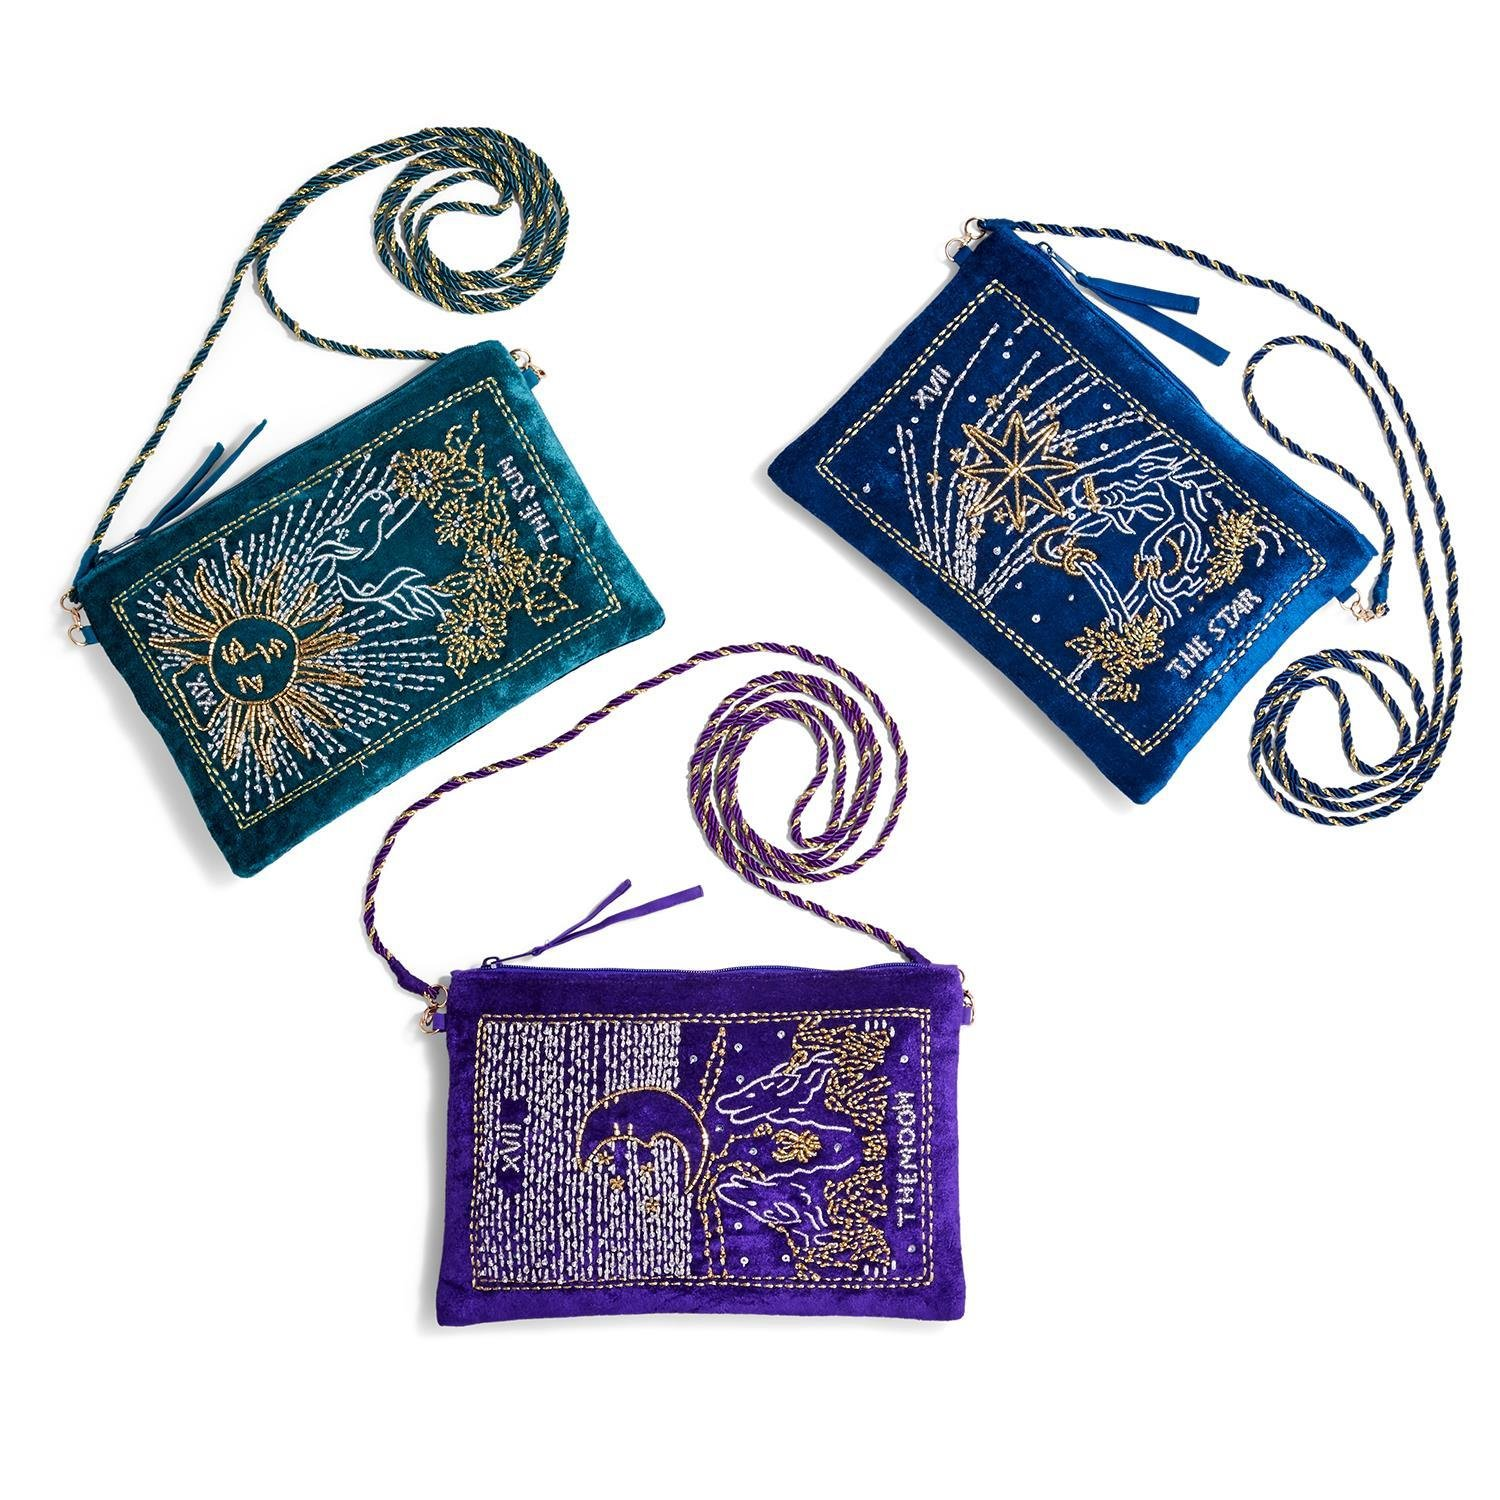 Two's Company Tarot Crushed Velvet Bag